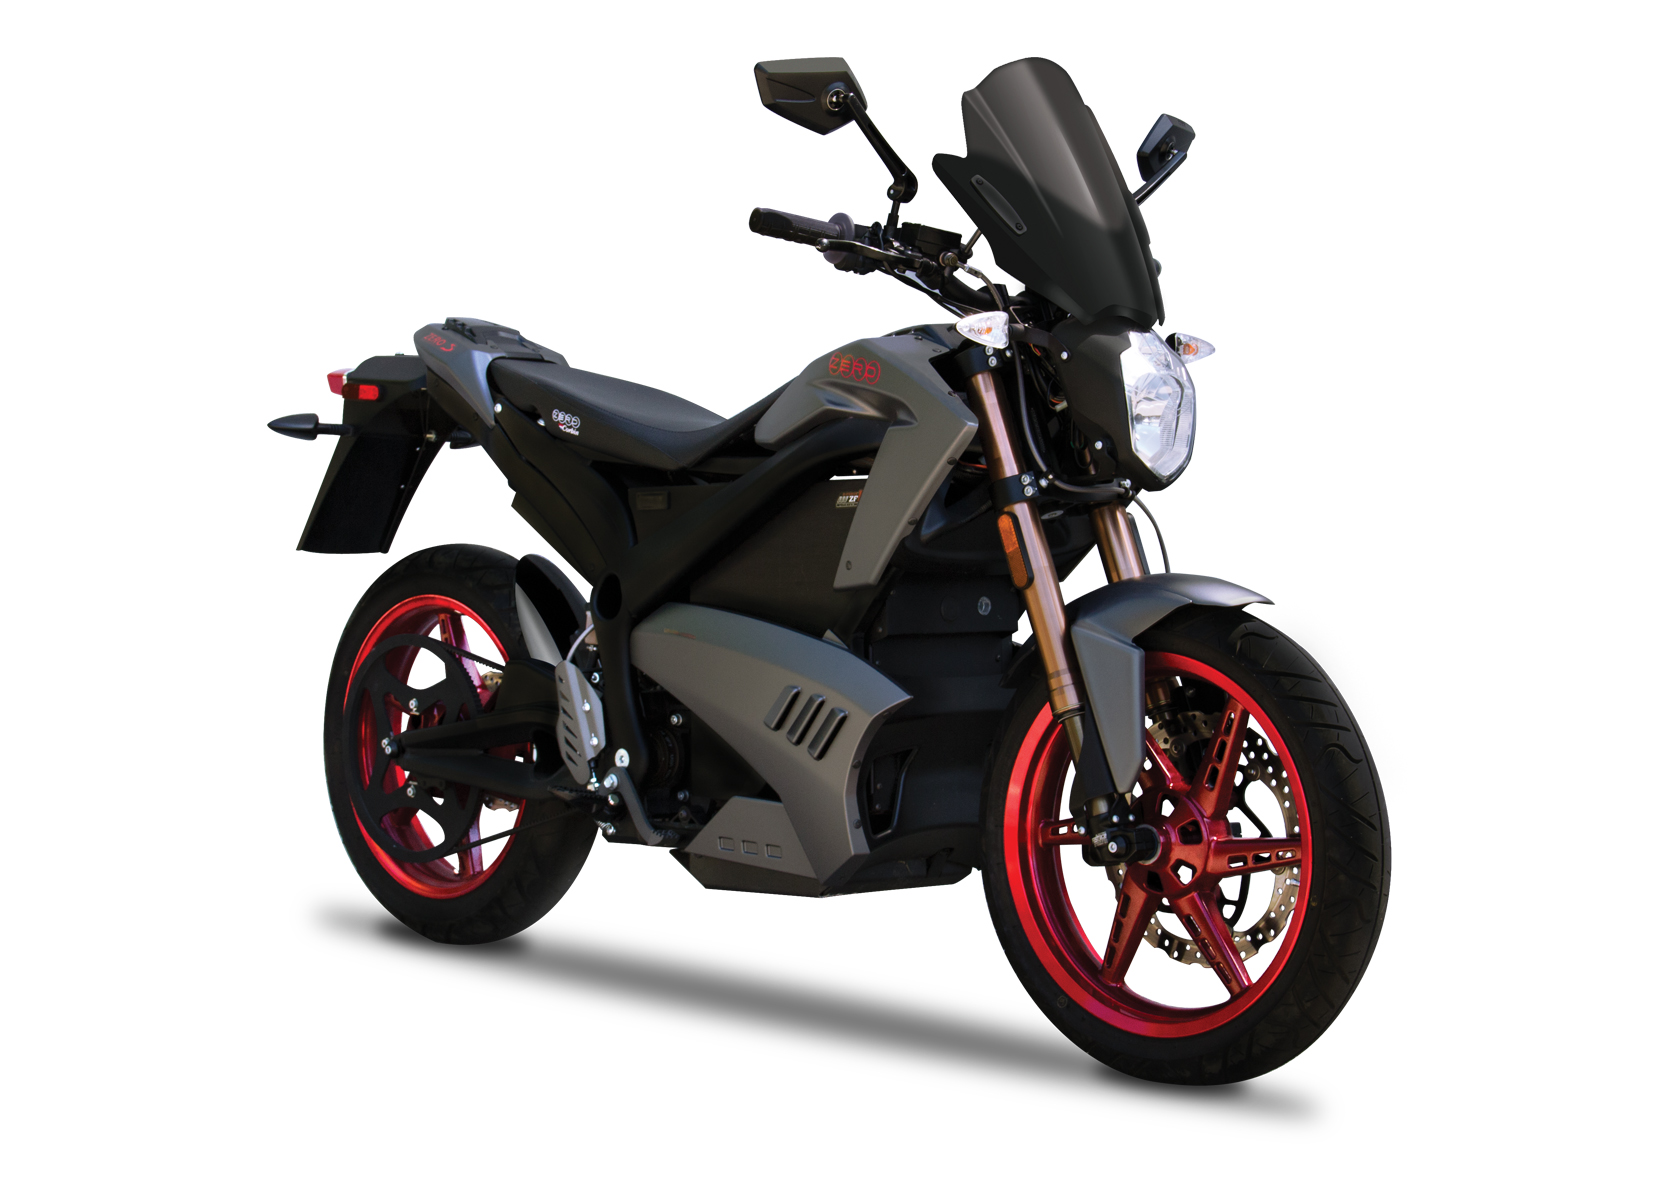 2012 Zero S ZF9 Limited Edition Electric Motorcycle: Angle Right with Front Cowel, White Background